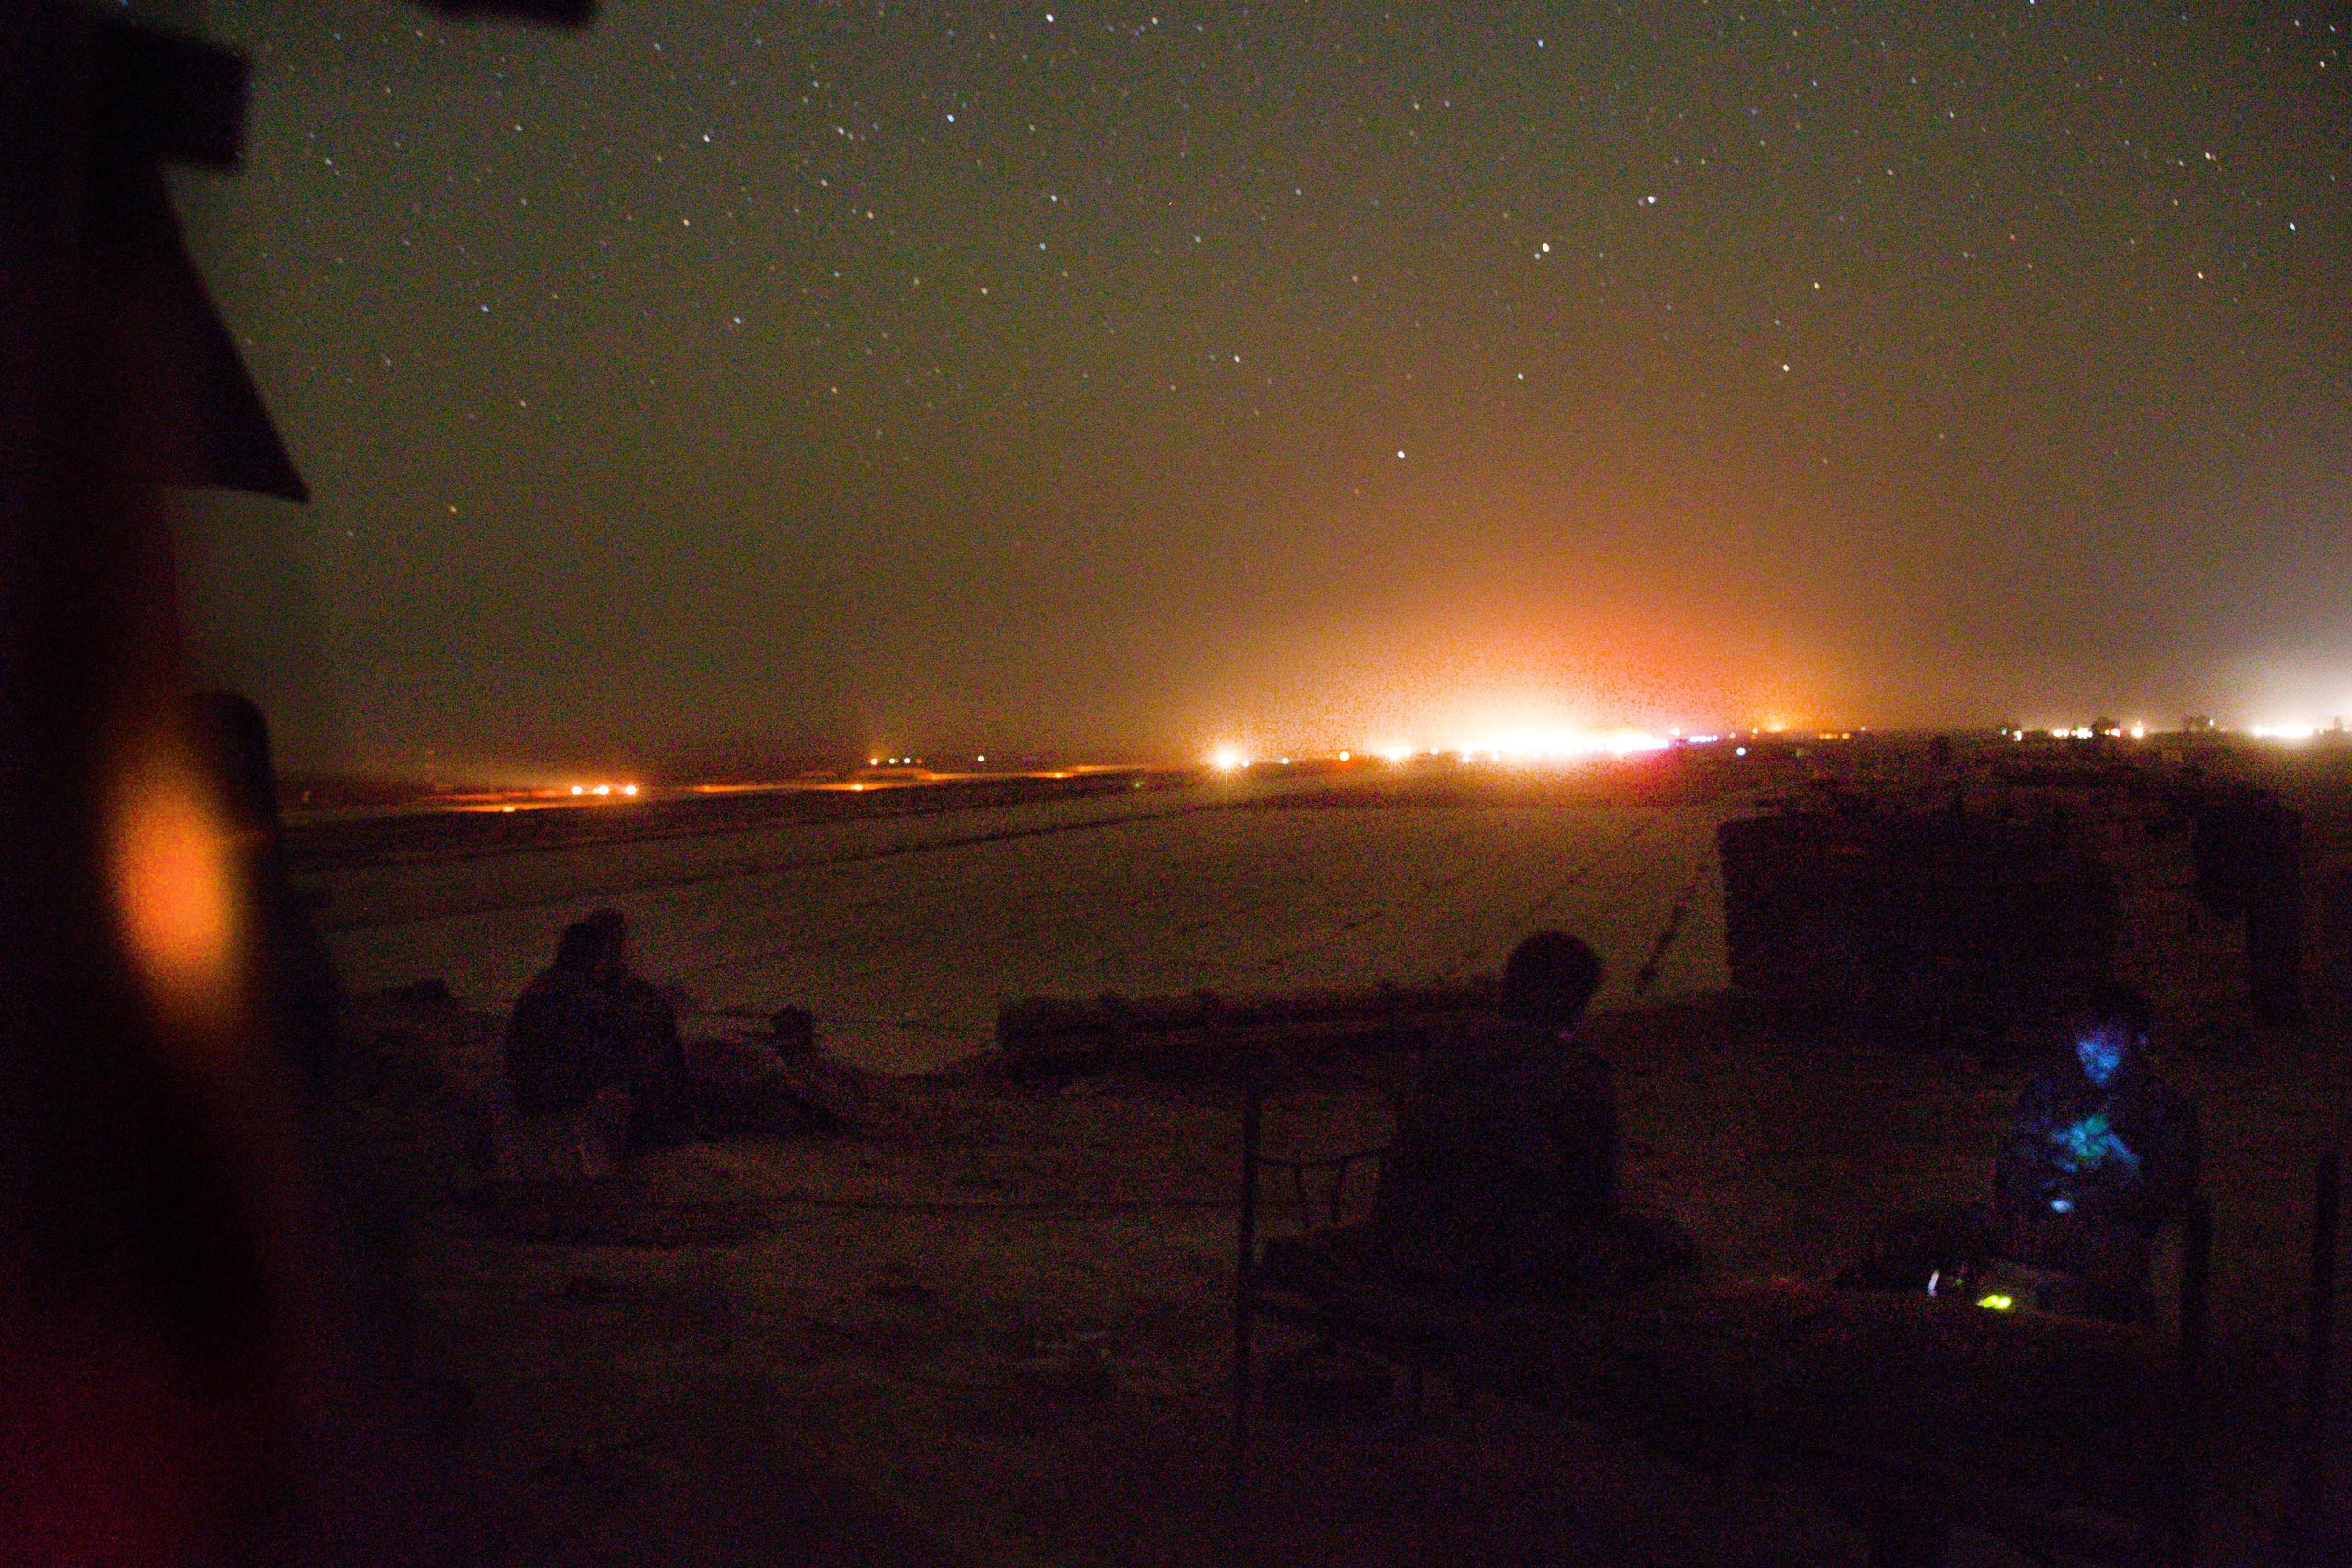 Syrian soldiers guarding the south-eastern front of the runway at Deir-ez Zor's airport watch as it lights up in preparation for a landing. Military flights that land at the base have become the only way in and out of the government-controlled parts of Deir ez-Zor. The nightly arrival of cargo planes transport munitions, food and medical supplies to the government held parts of the city, May 20, 2015.